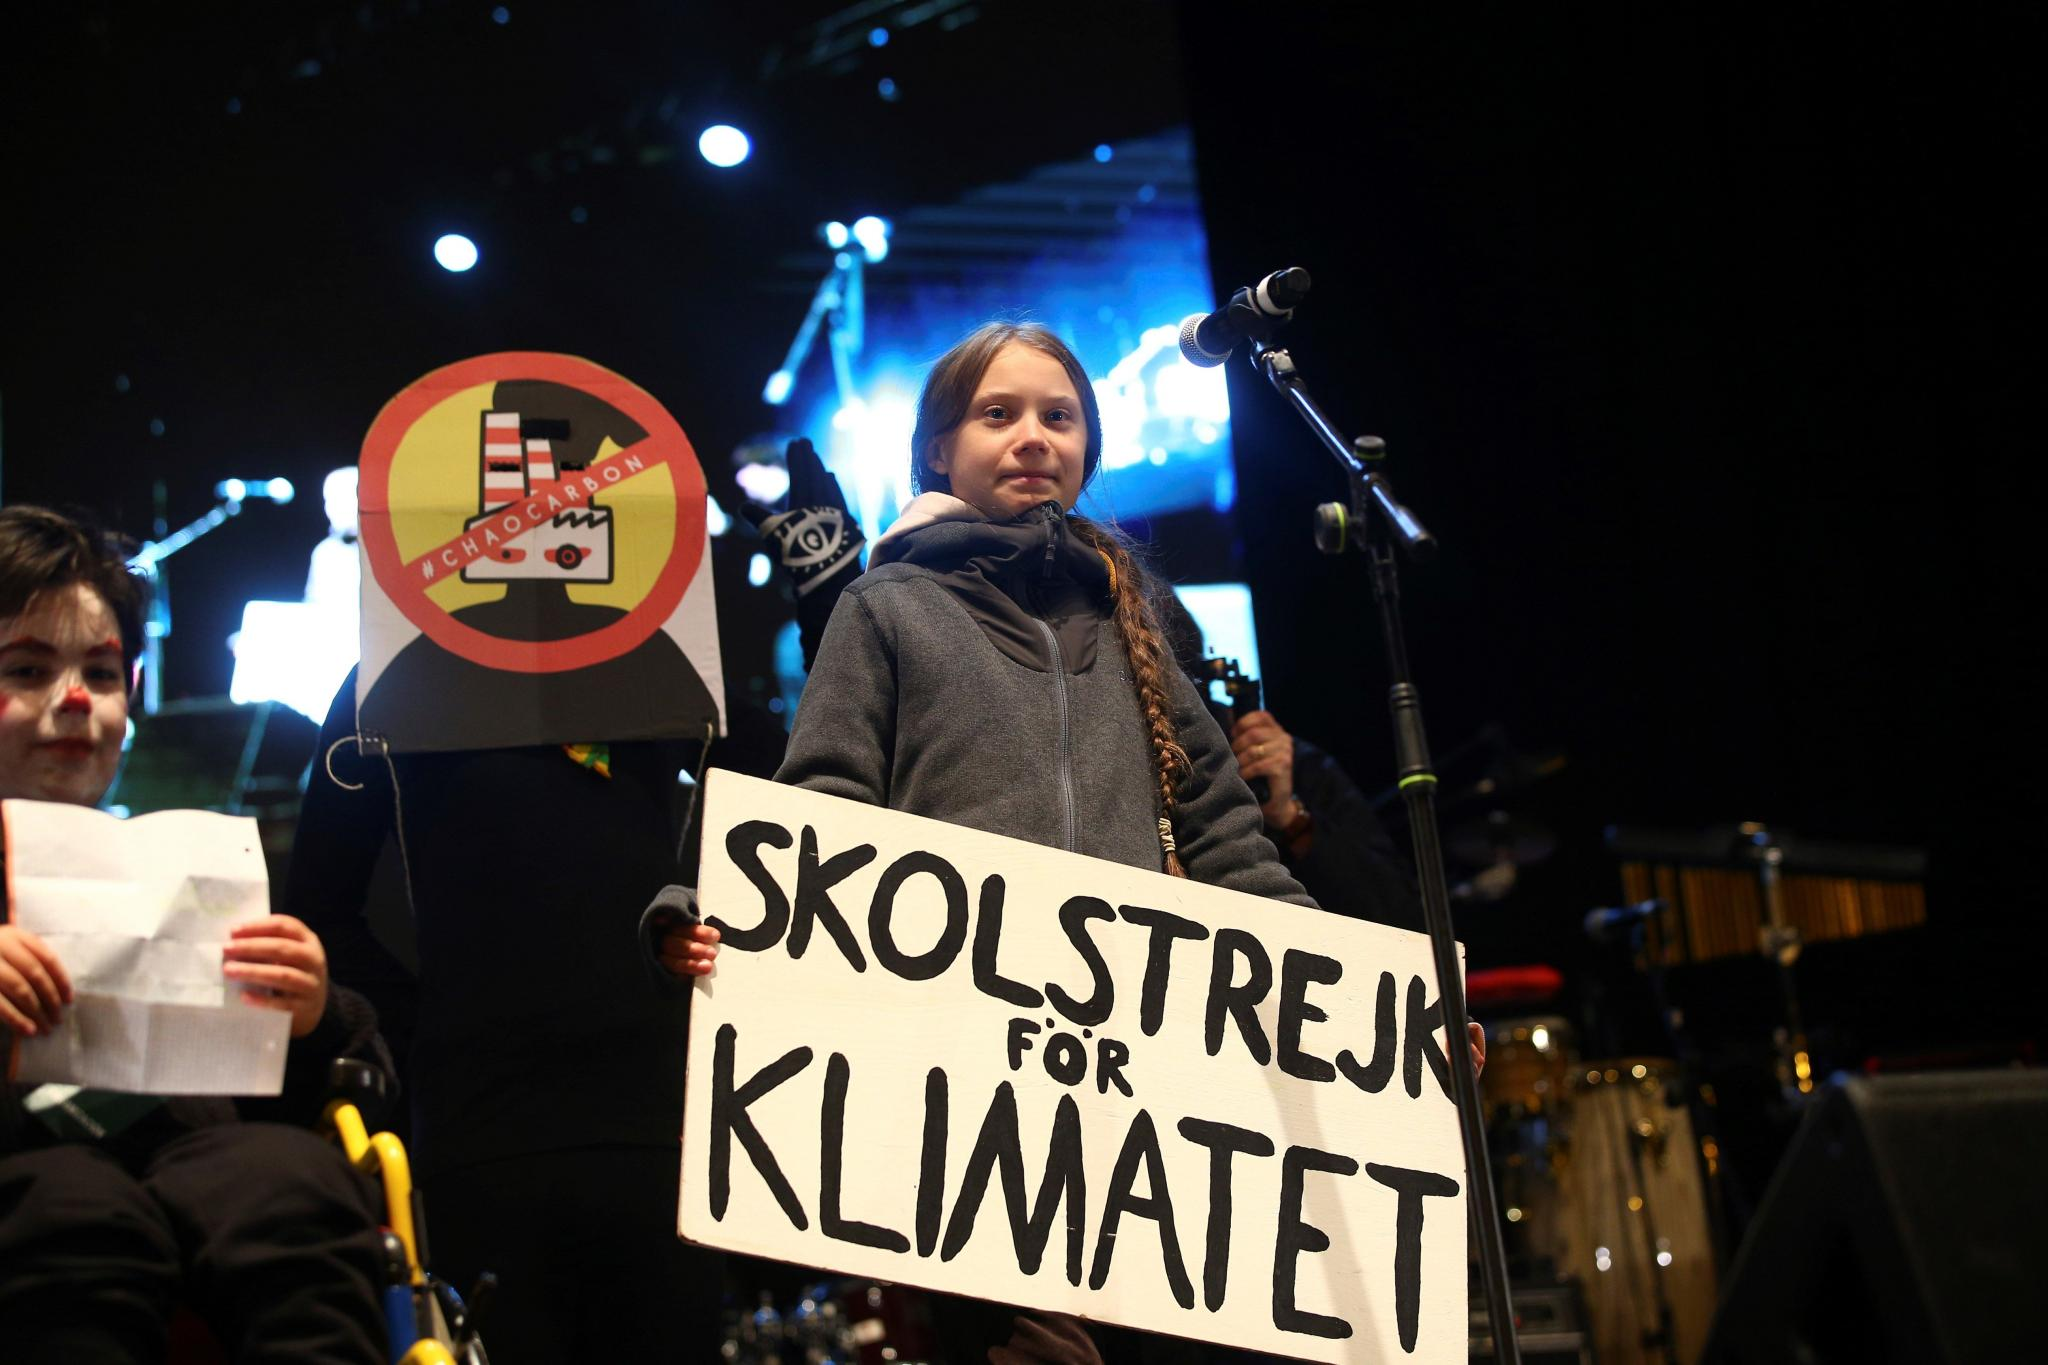 Greta Thunberg at the Climate Change protest in Madrid